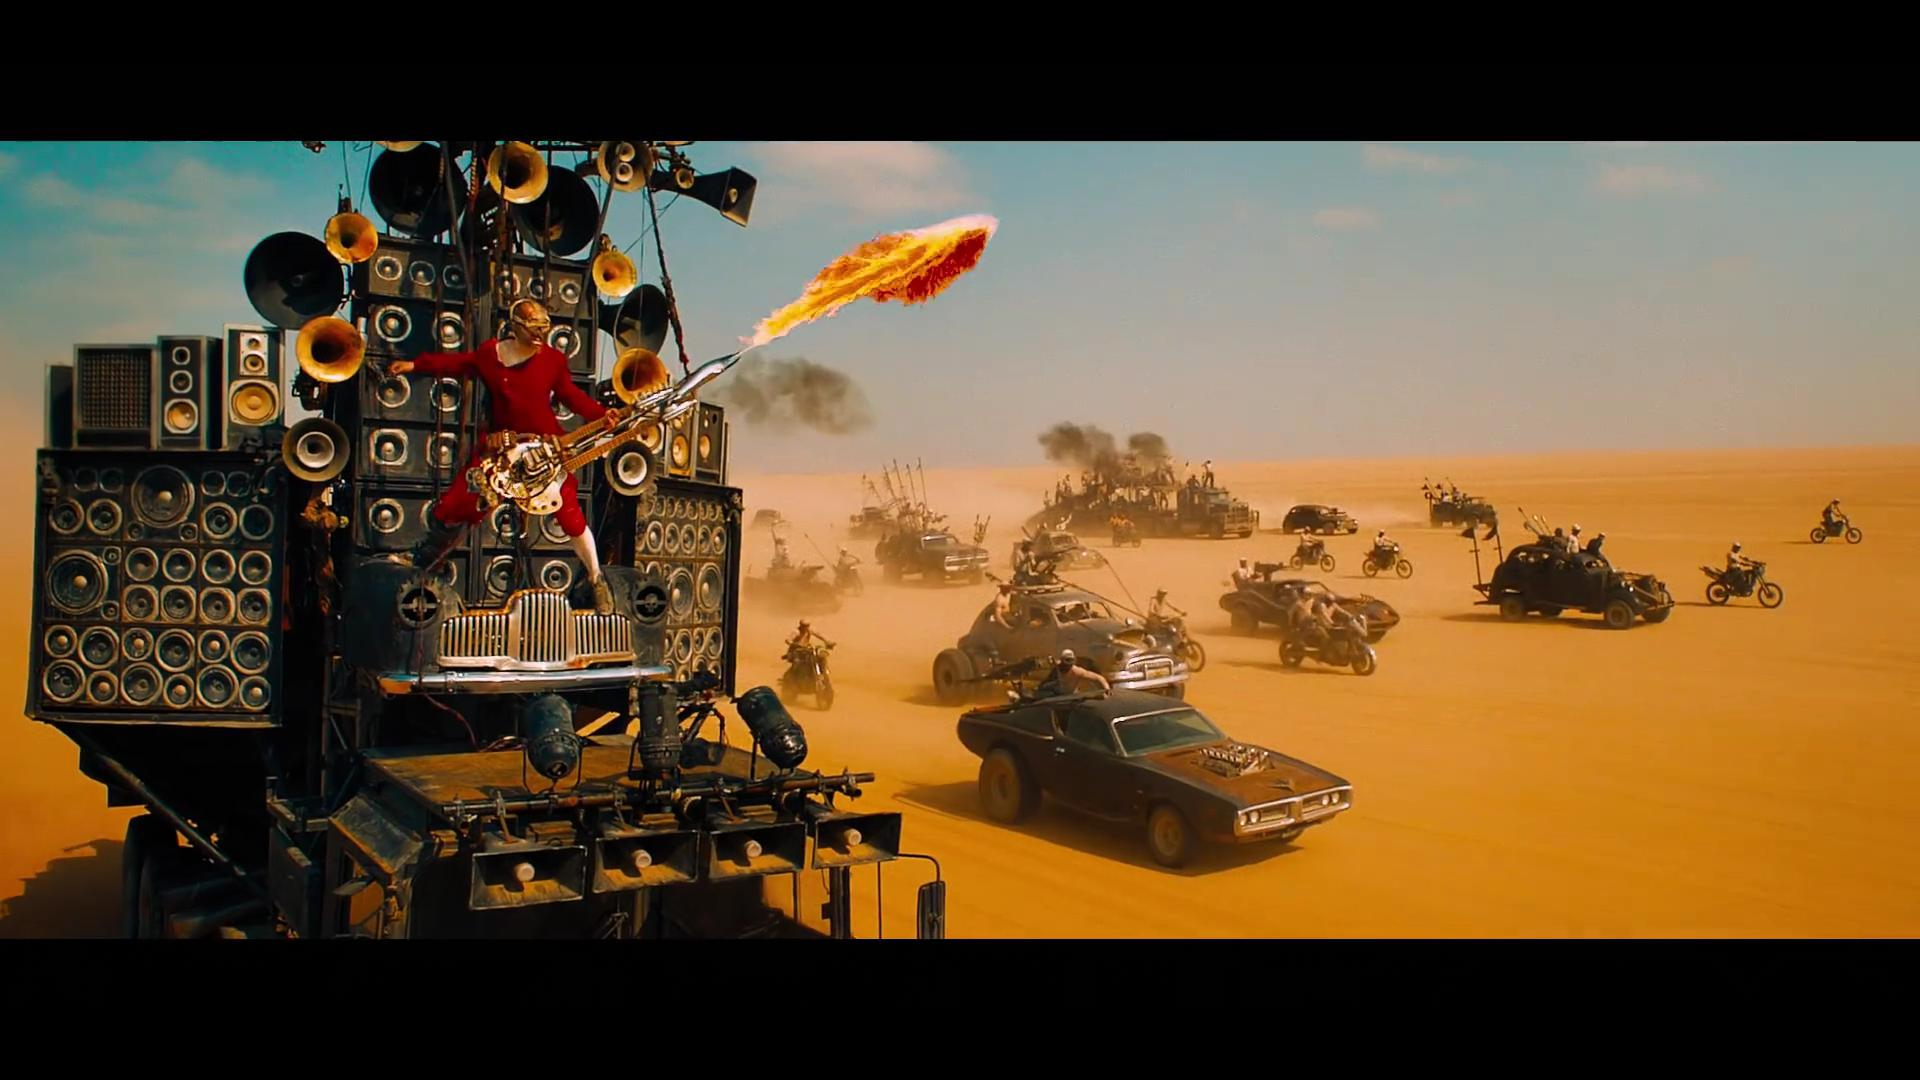 The flame-throwing guitar guy from Mad Max, 1080p screengrab from